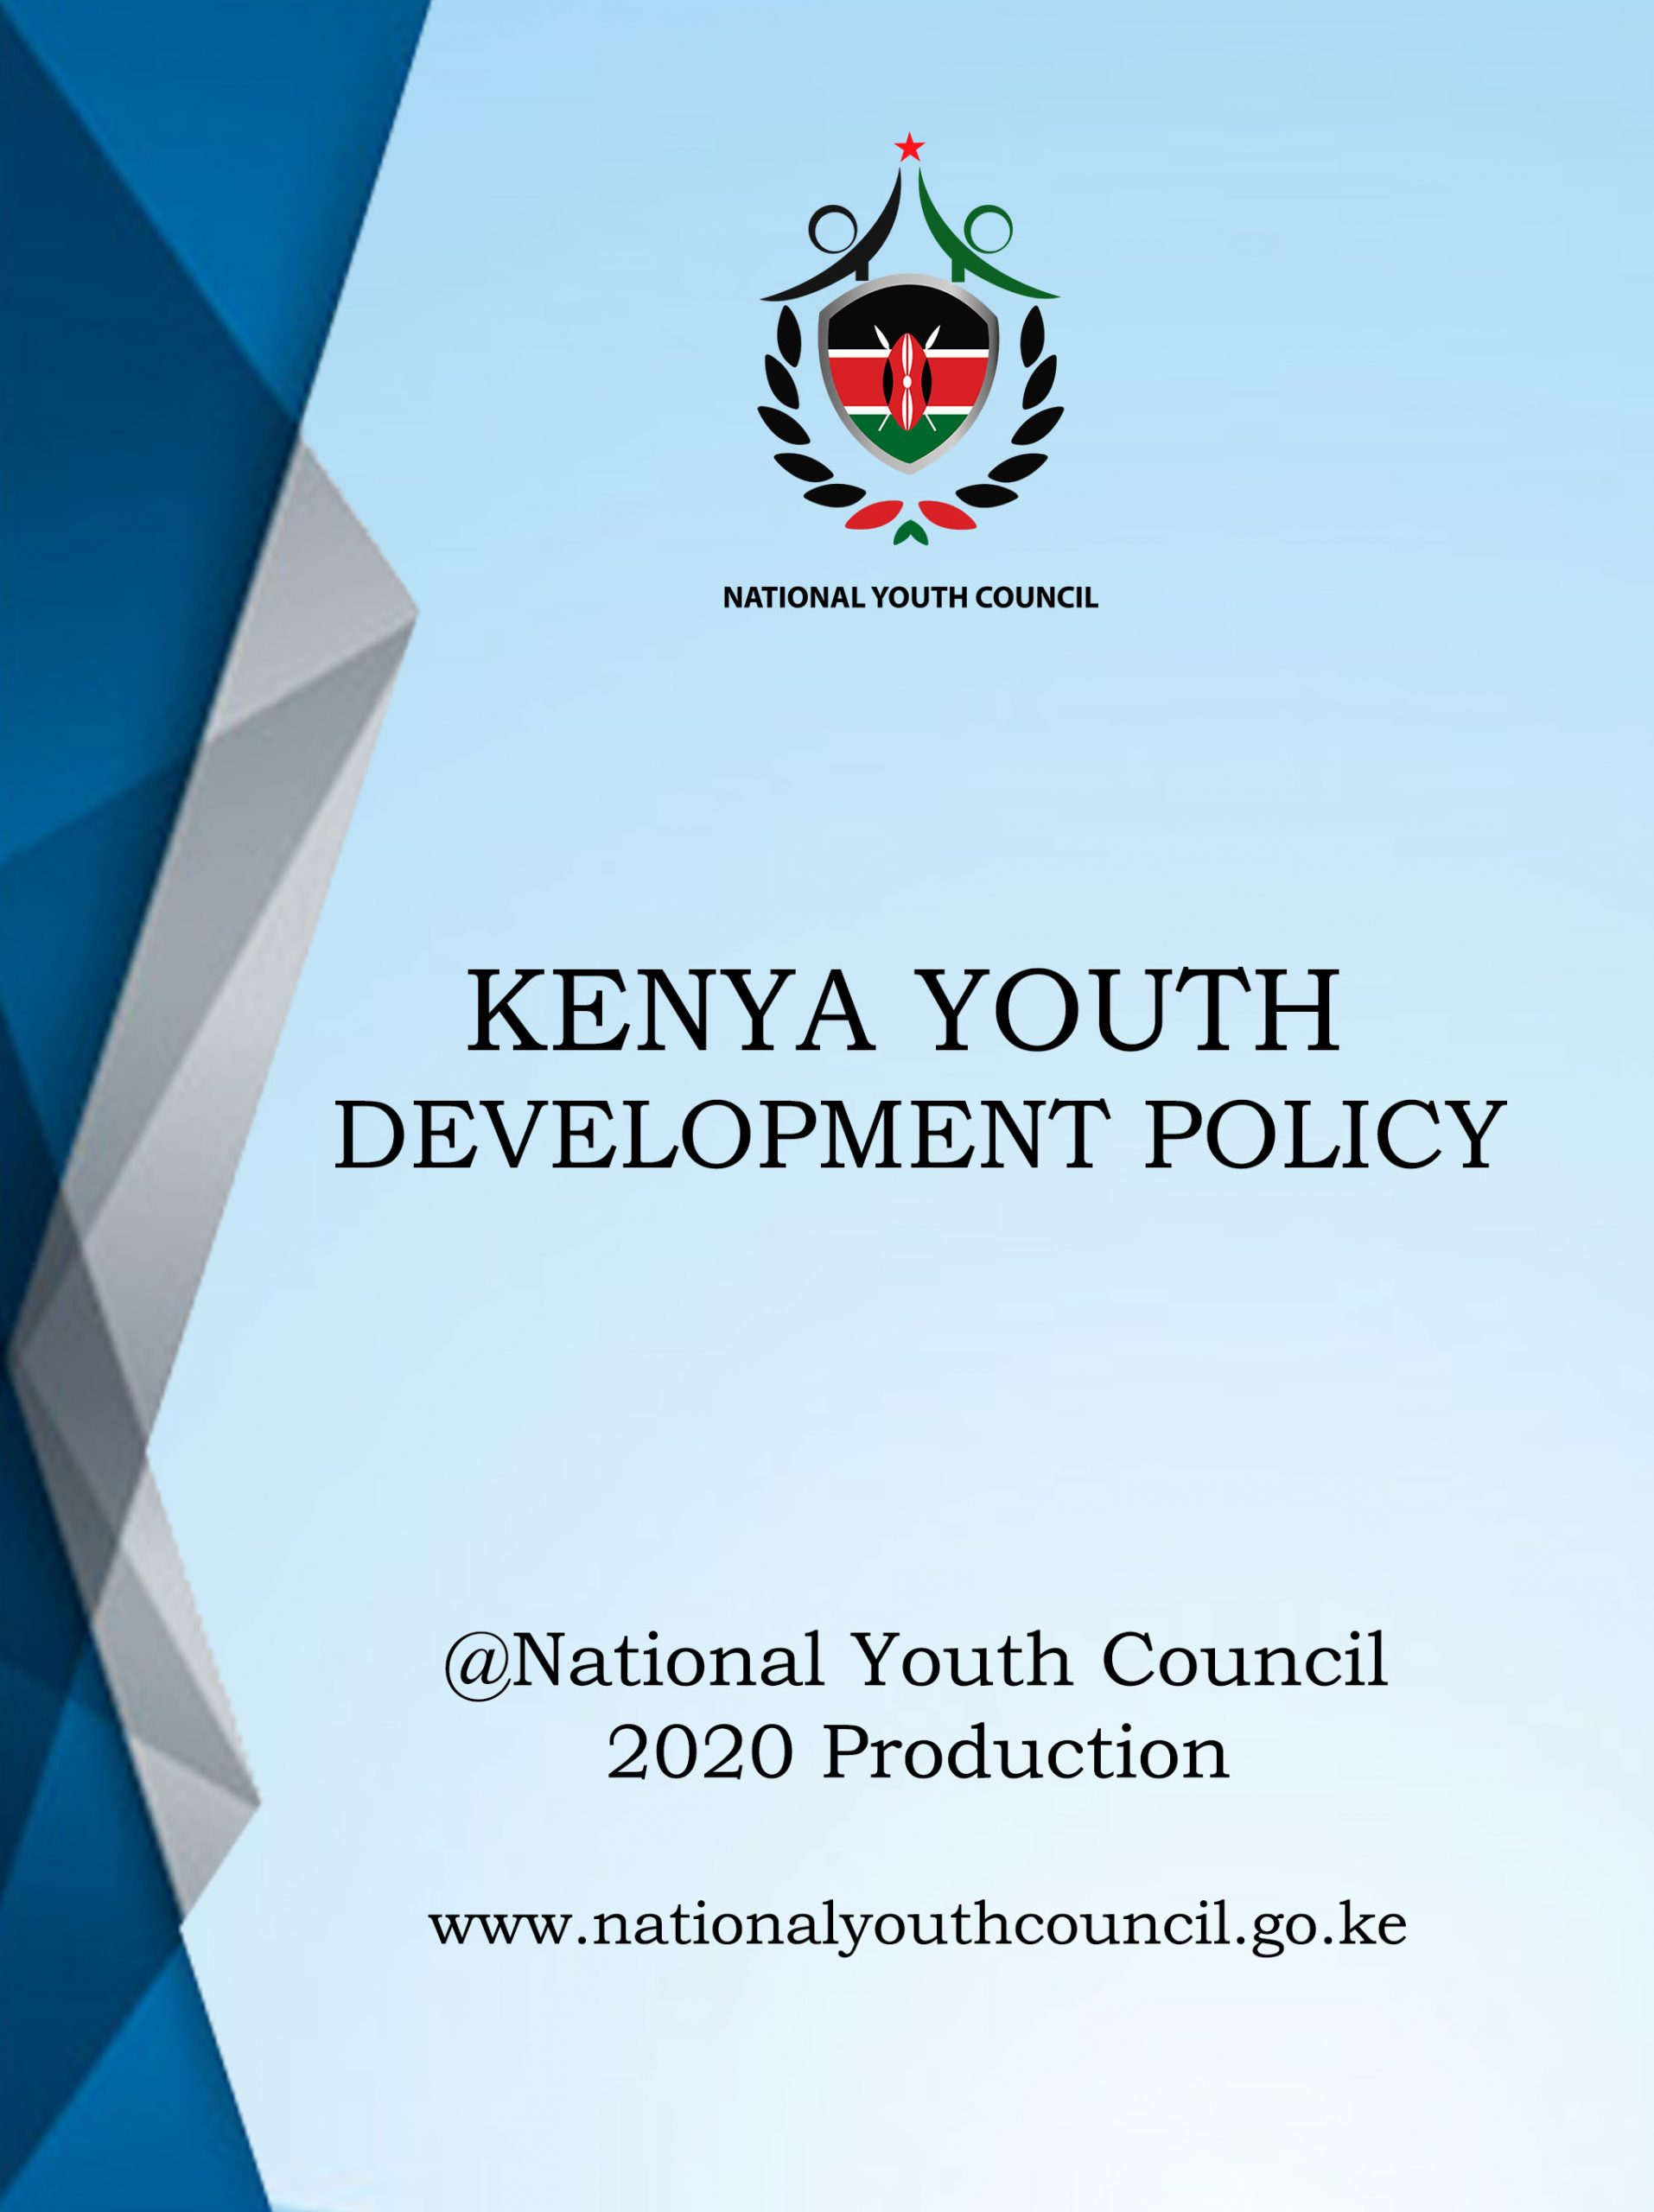 KENYA YOUTH DEVELOPMENT POLICY